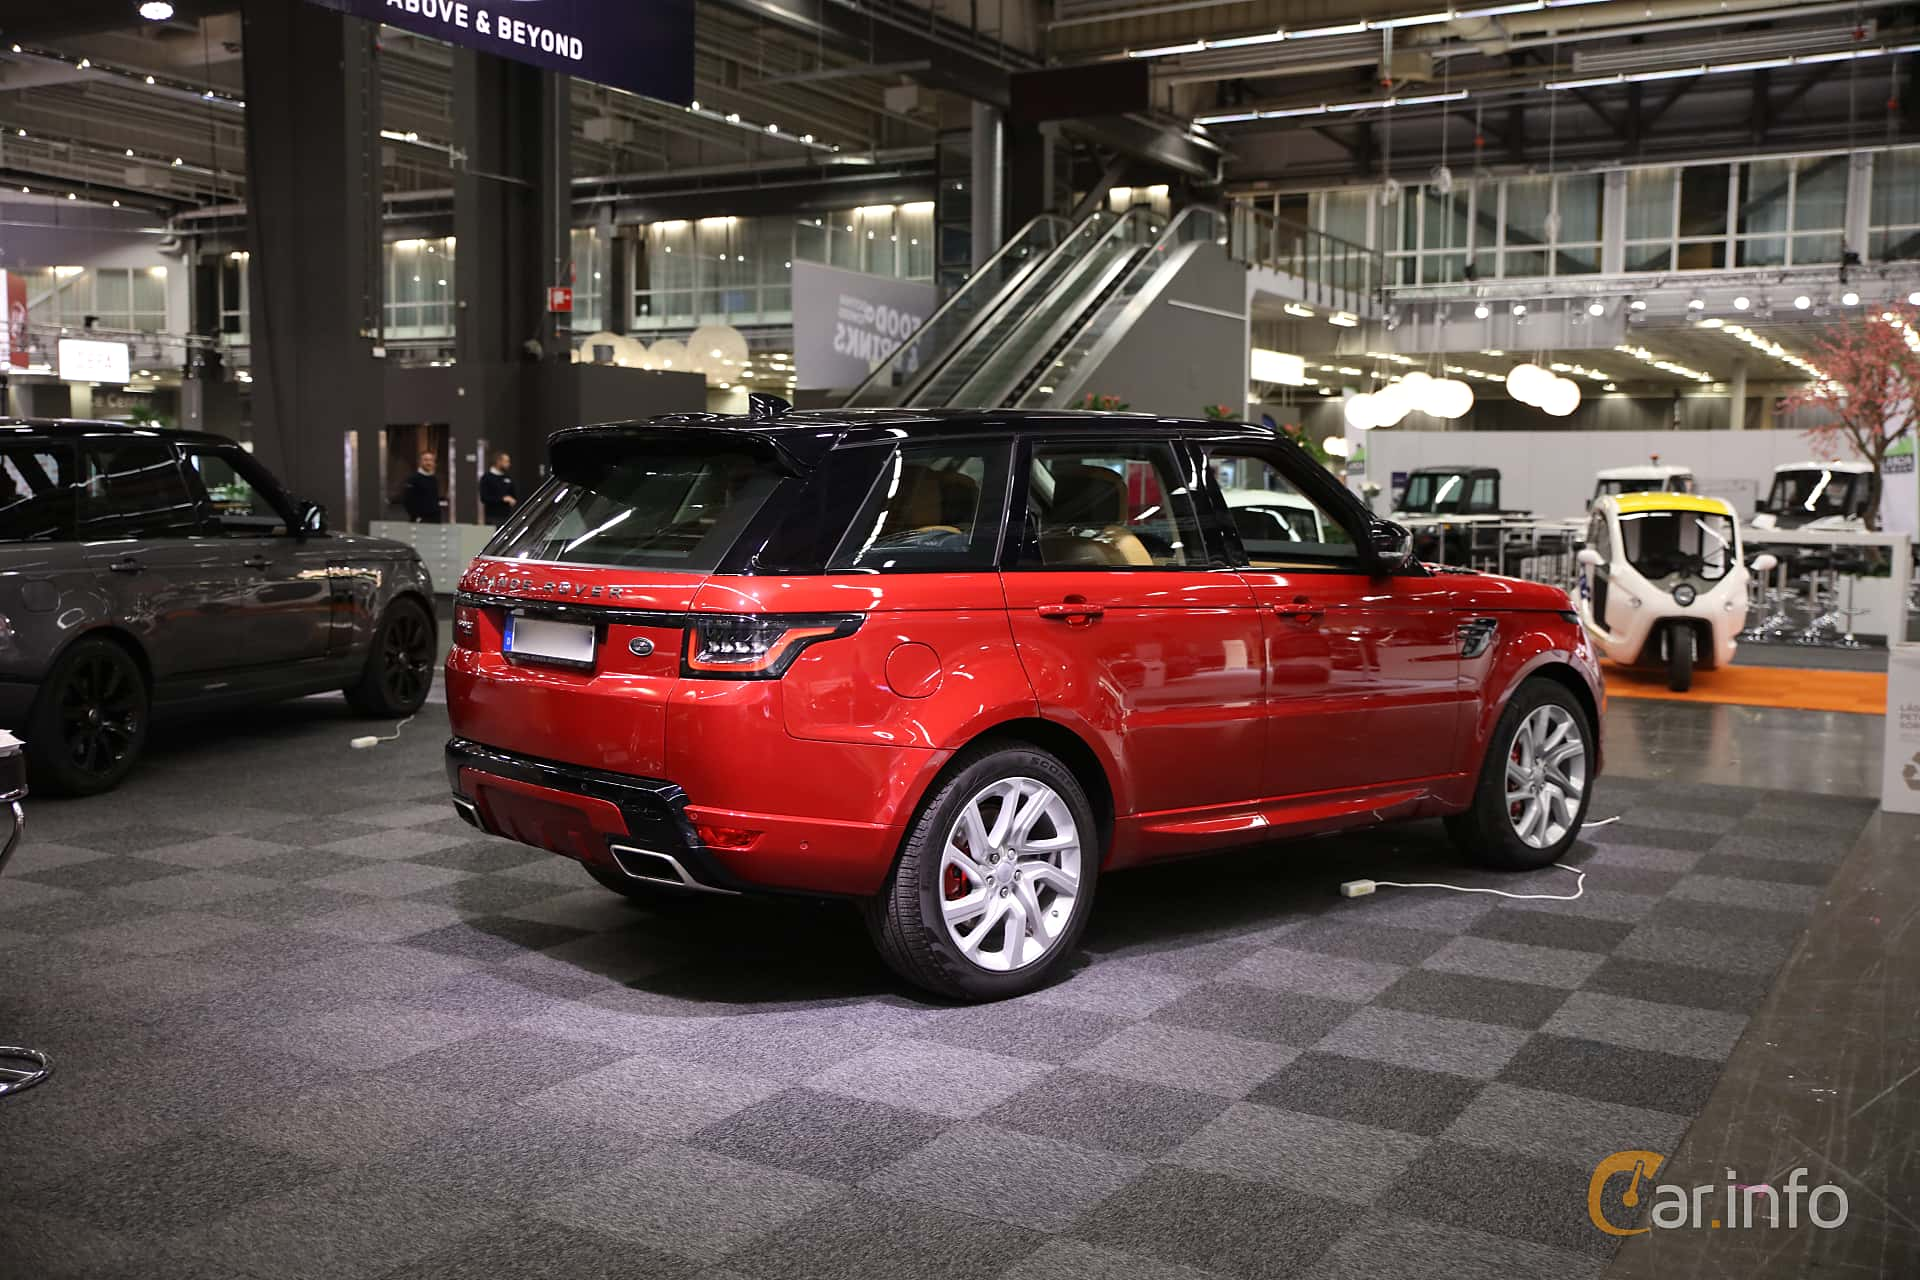 Land Rover Range Rover Sport P400e 2.0 + 13.1 kWh 4WD Automatic, 404hp, 2018 at eCar Expo Göteborg 2018